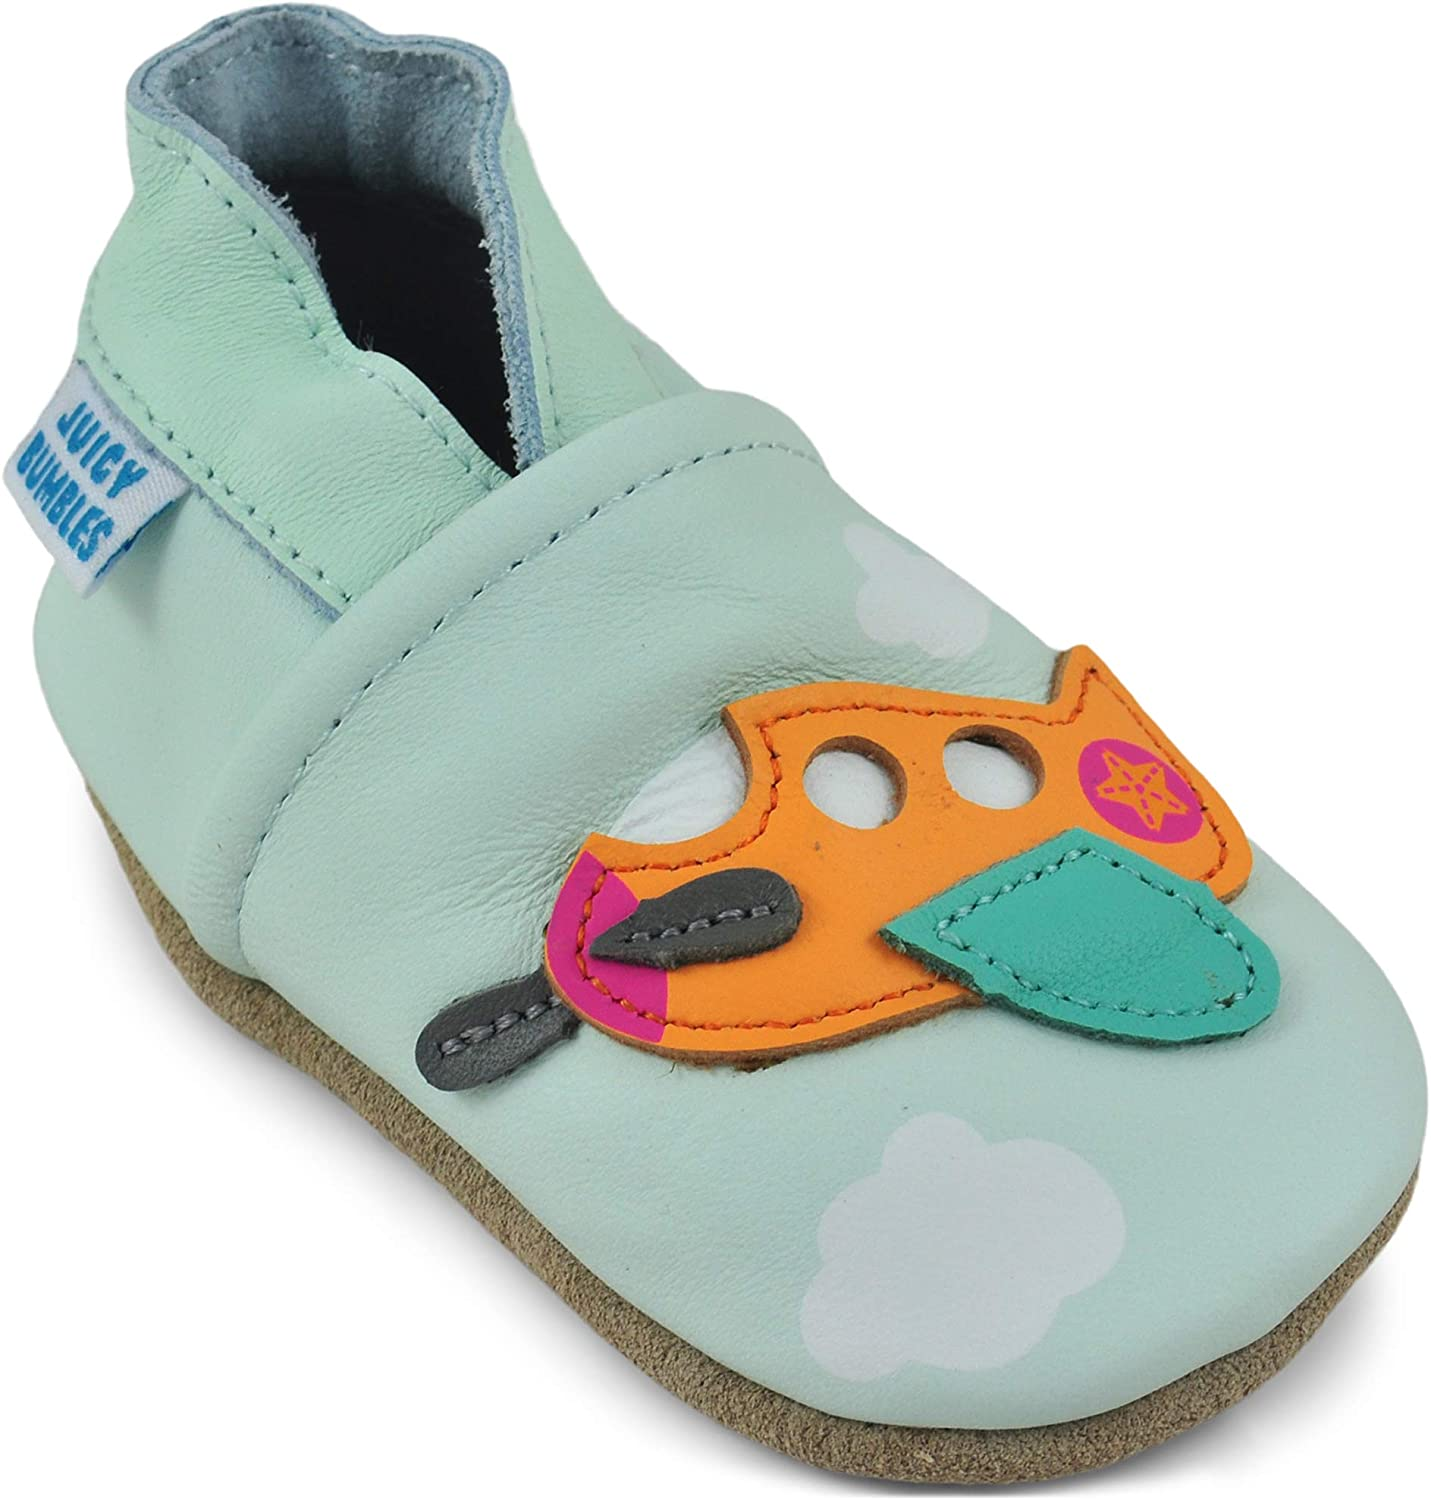 Baby Shoes Baby Walking Shoes - Soft Sole Leather Baby Boy Shoes - Baby Girl Shoes - Baby Moccasins